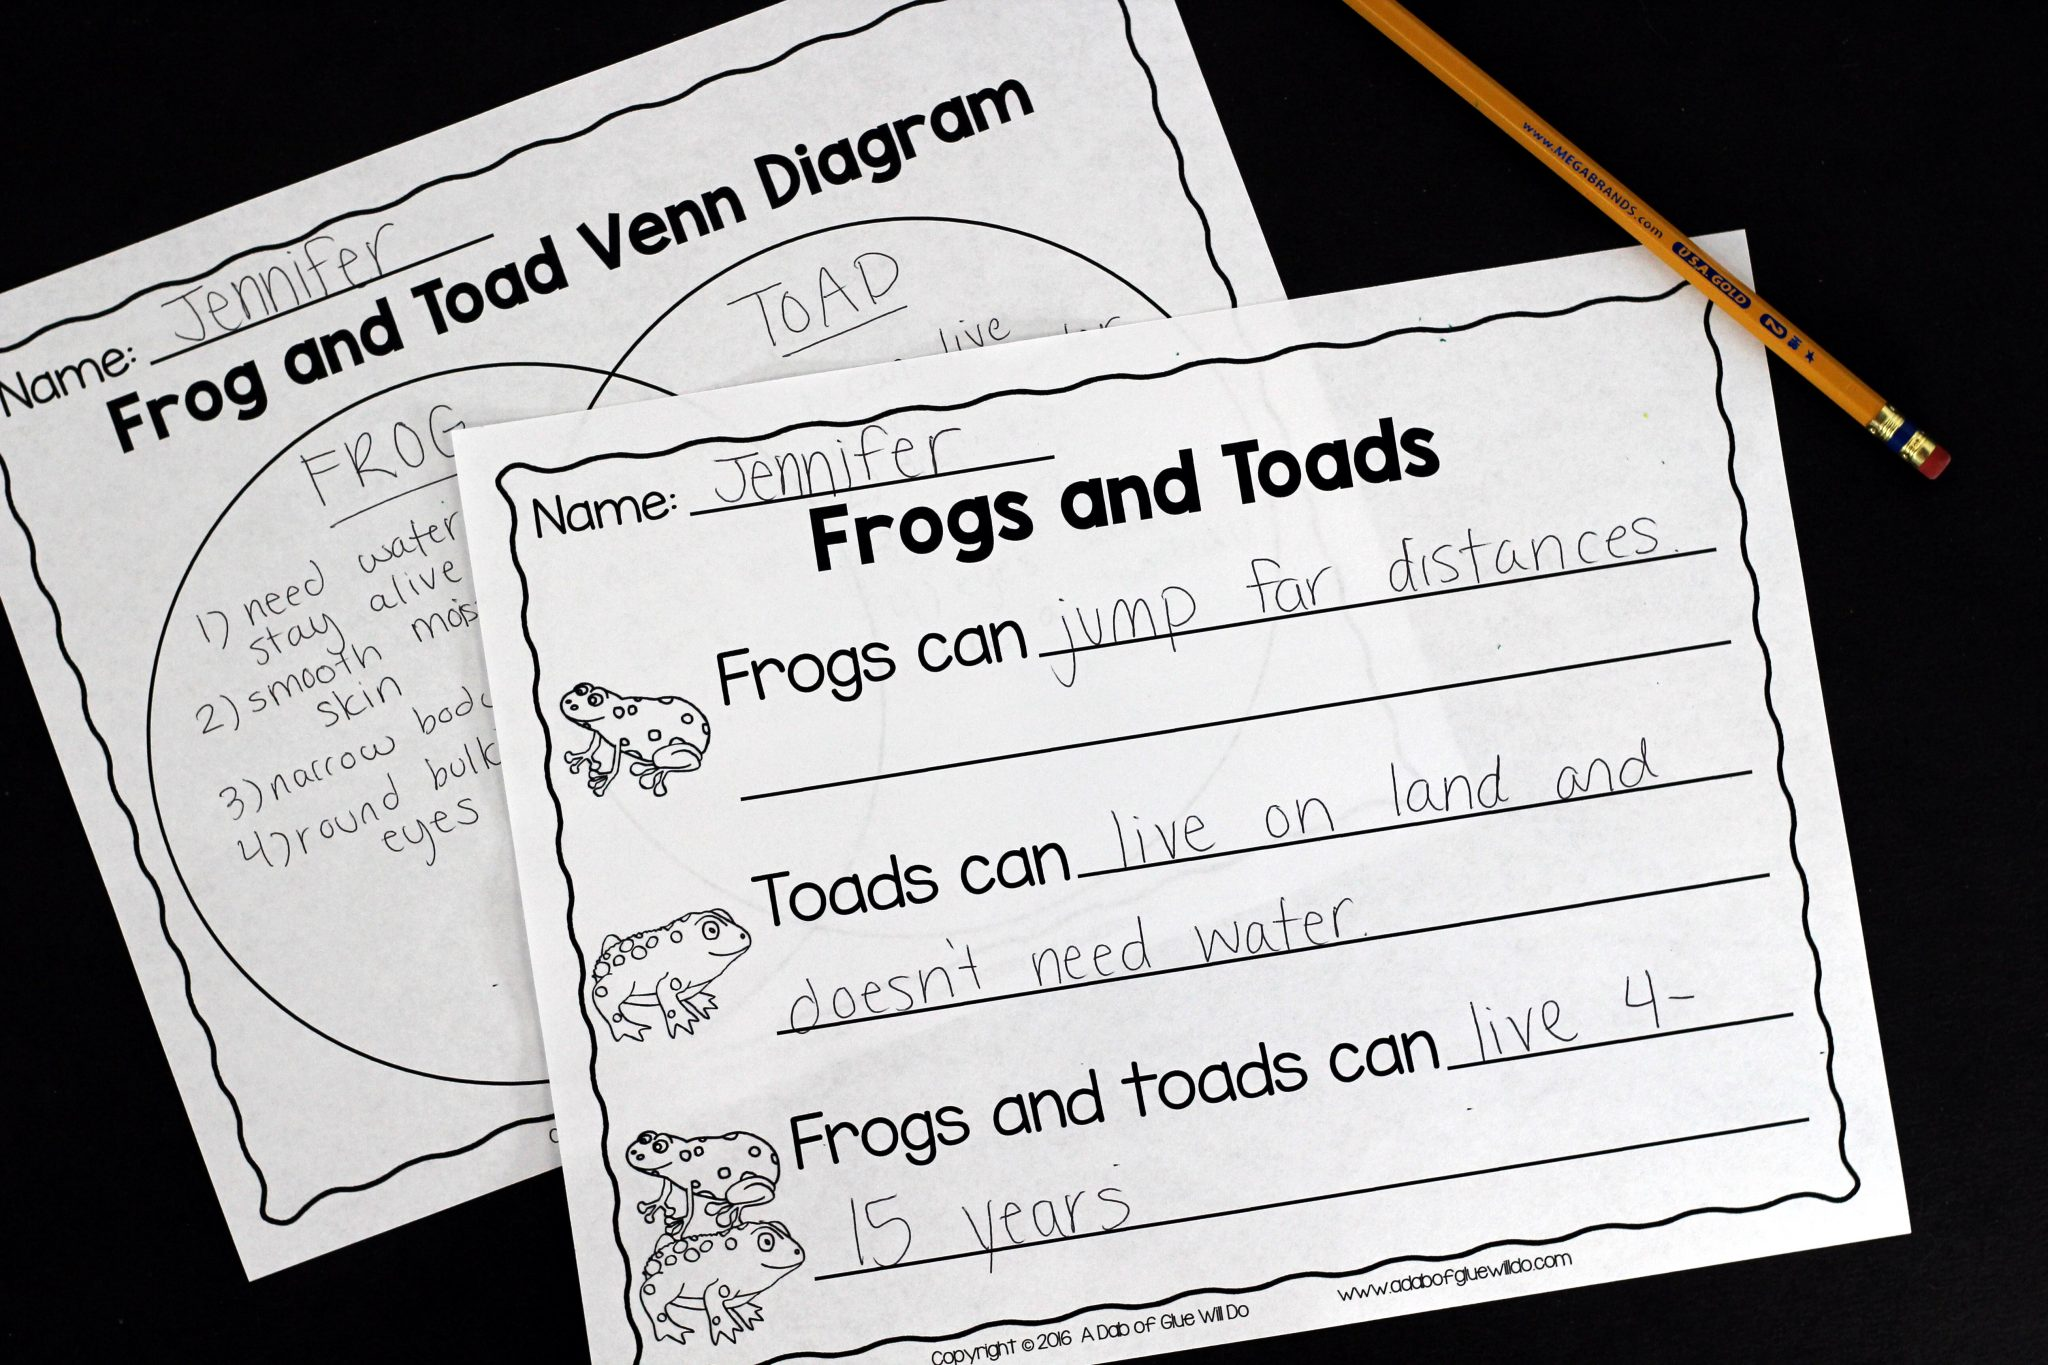 frog and toad venn diagram 2001 dodge ram radio wiring frogs an animal study engage your class in exciting hands on experience learning all about this